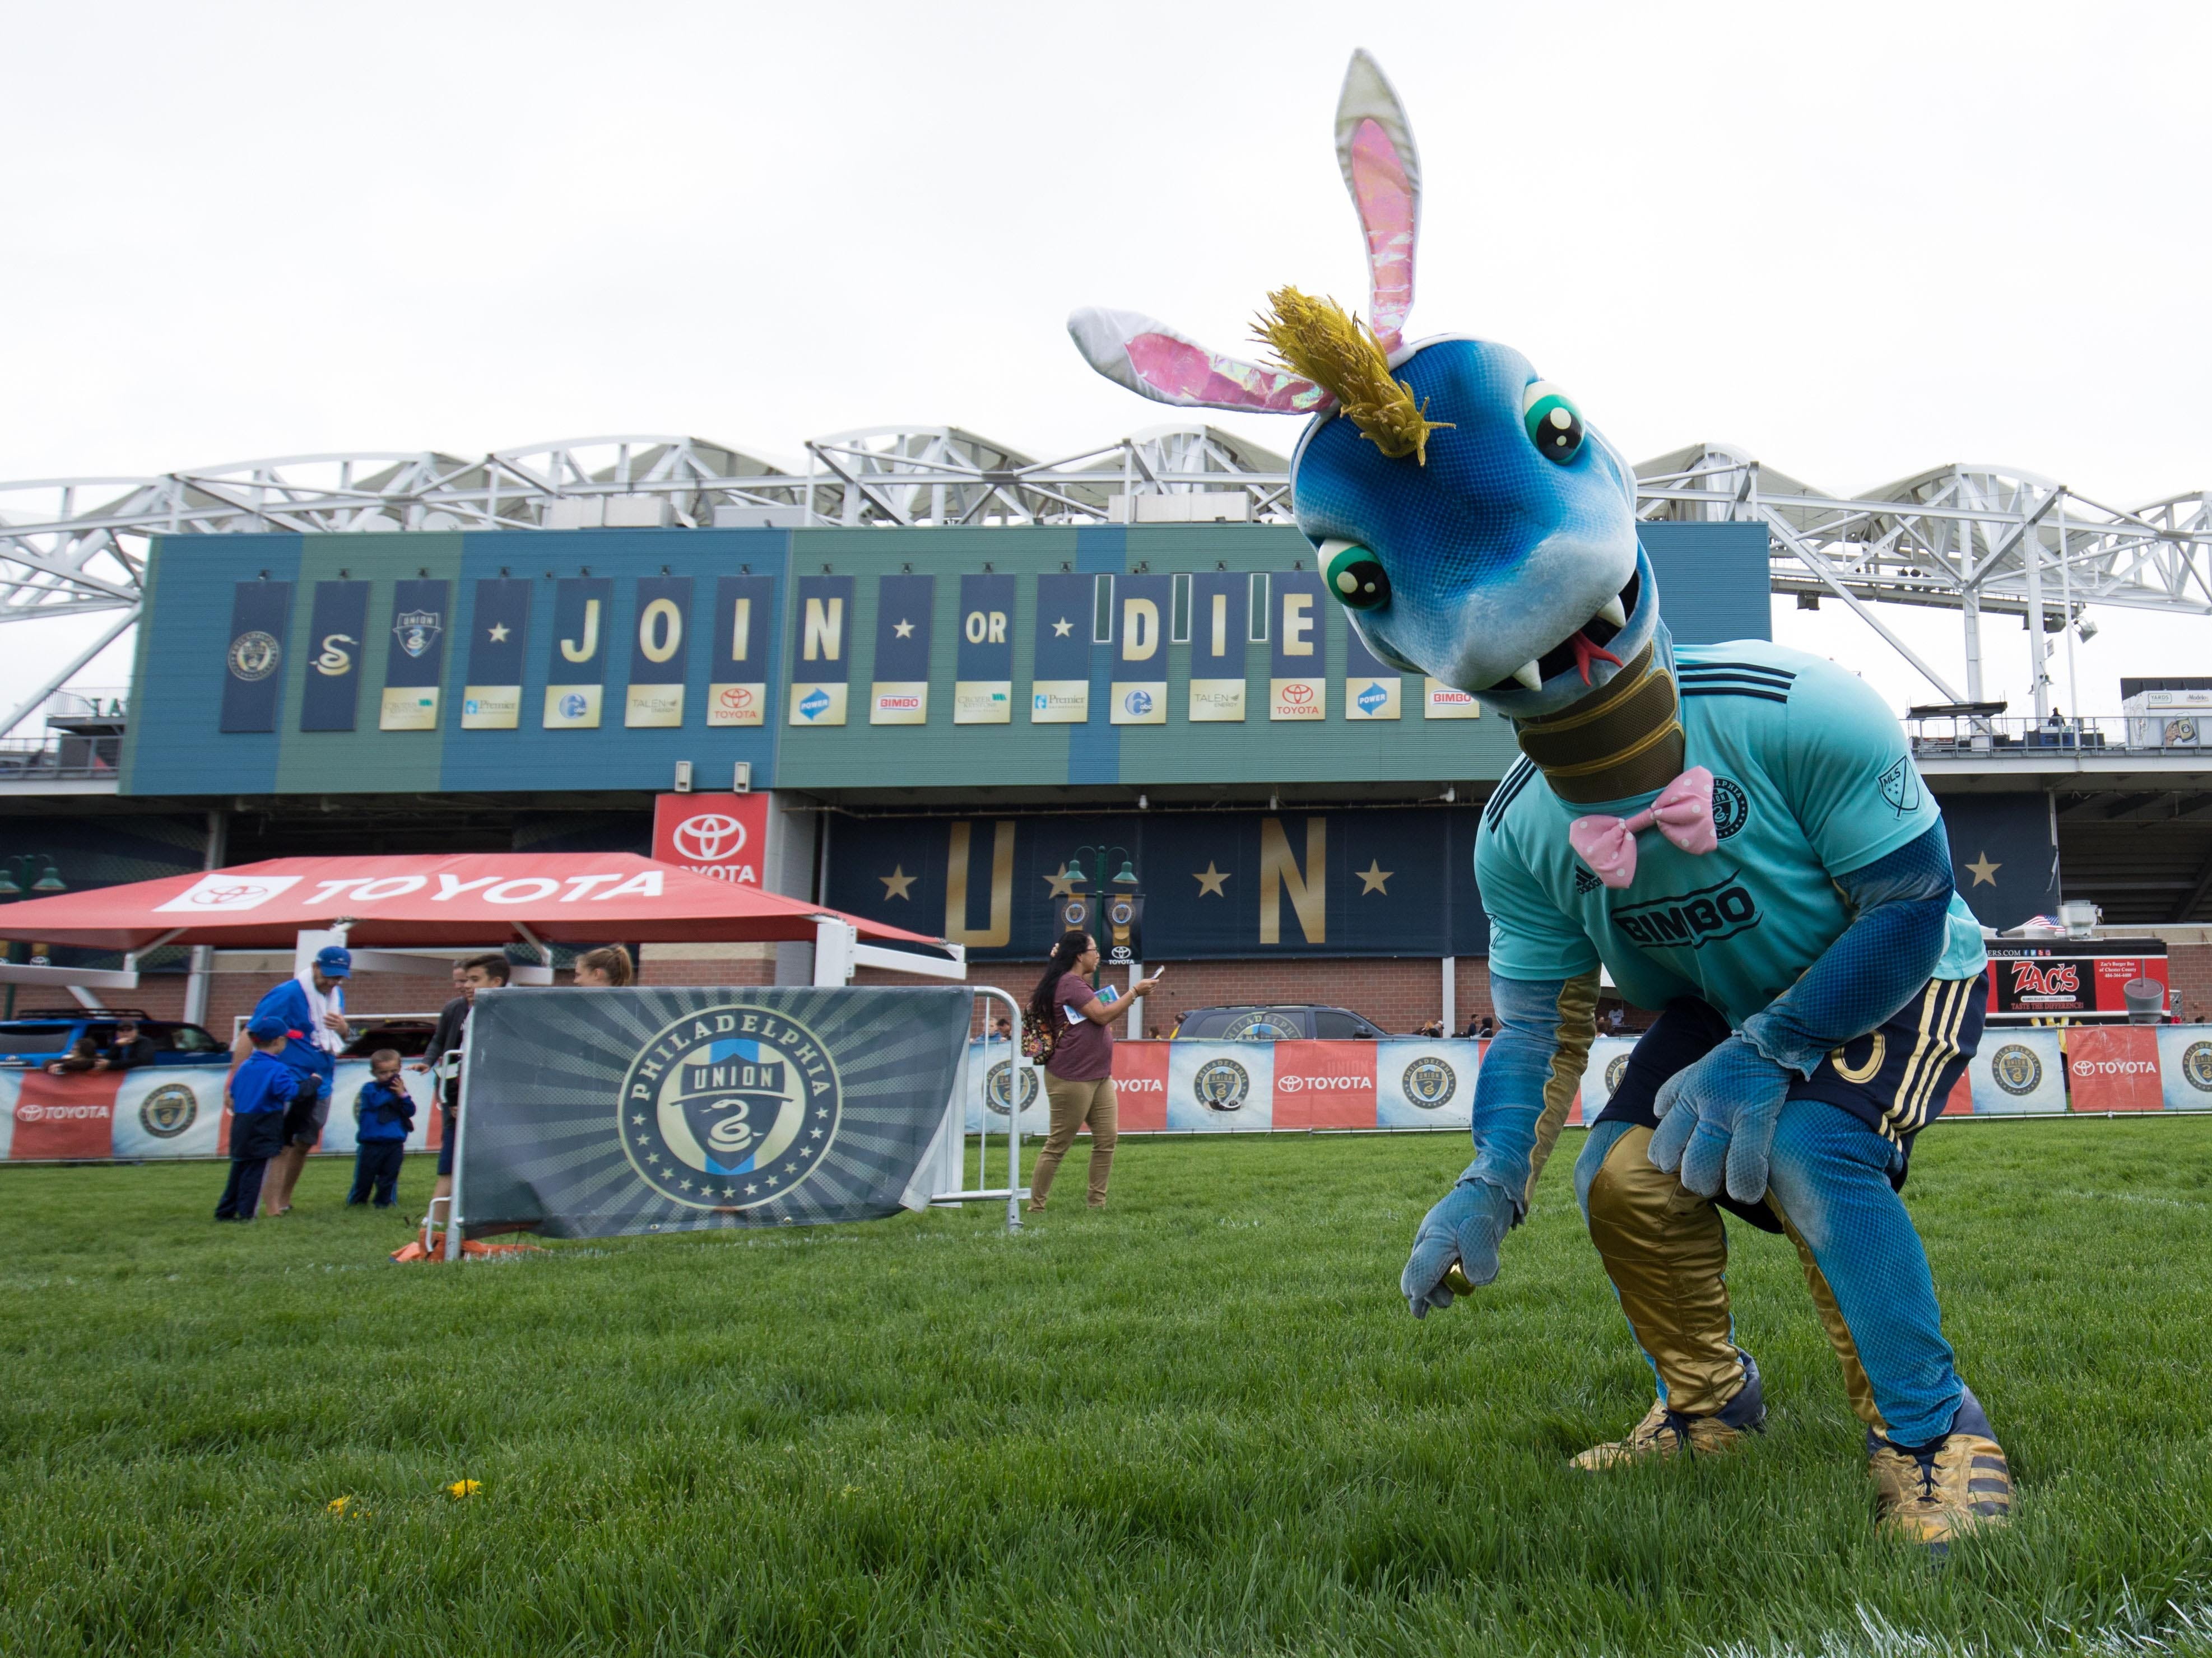 Philadelphia Union mascot Phang searches for Easter Eggs outside Talen Energy Stadium before a game against the Montreal Impact in Philadelphia.